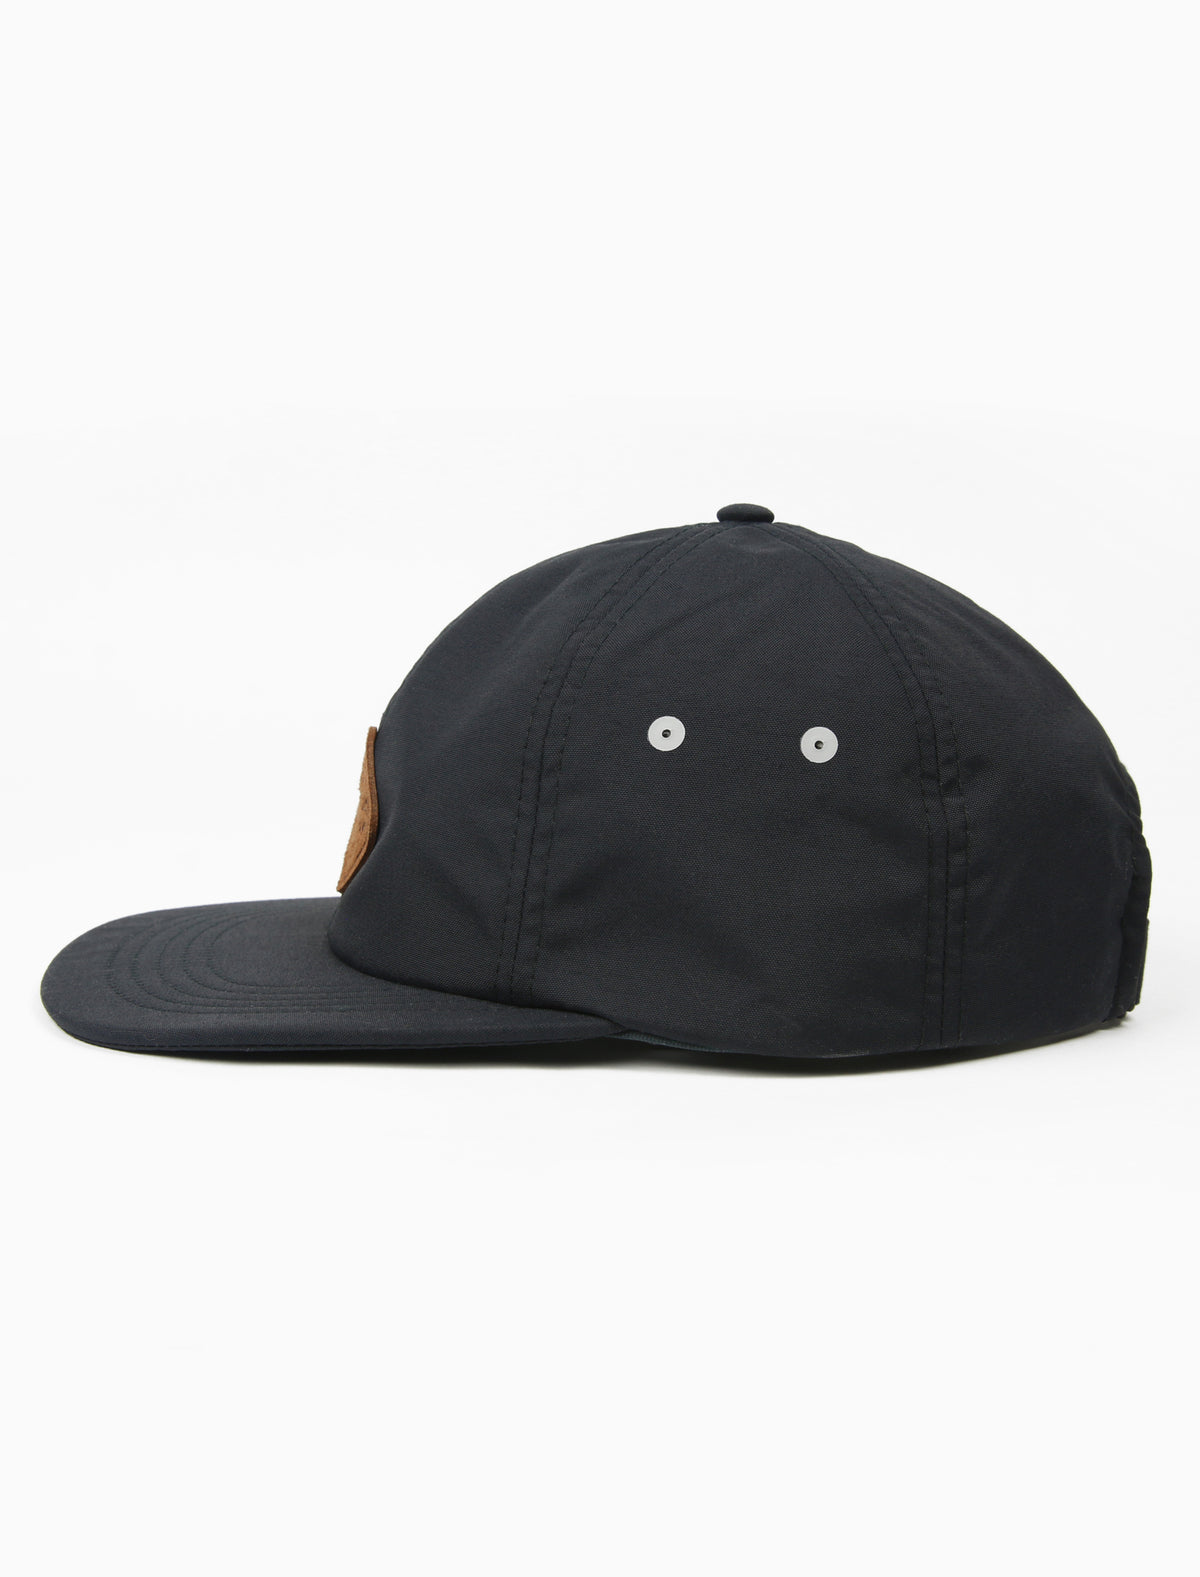 acrylick headwear 2019 midnighters packable hat, staydri, flexable hat hat black leather patch